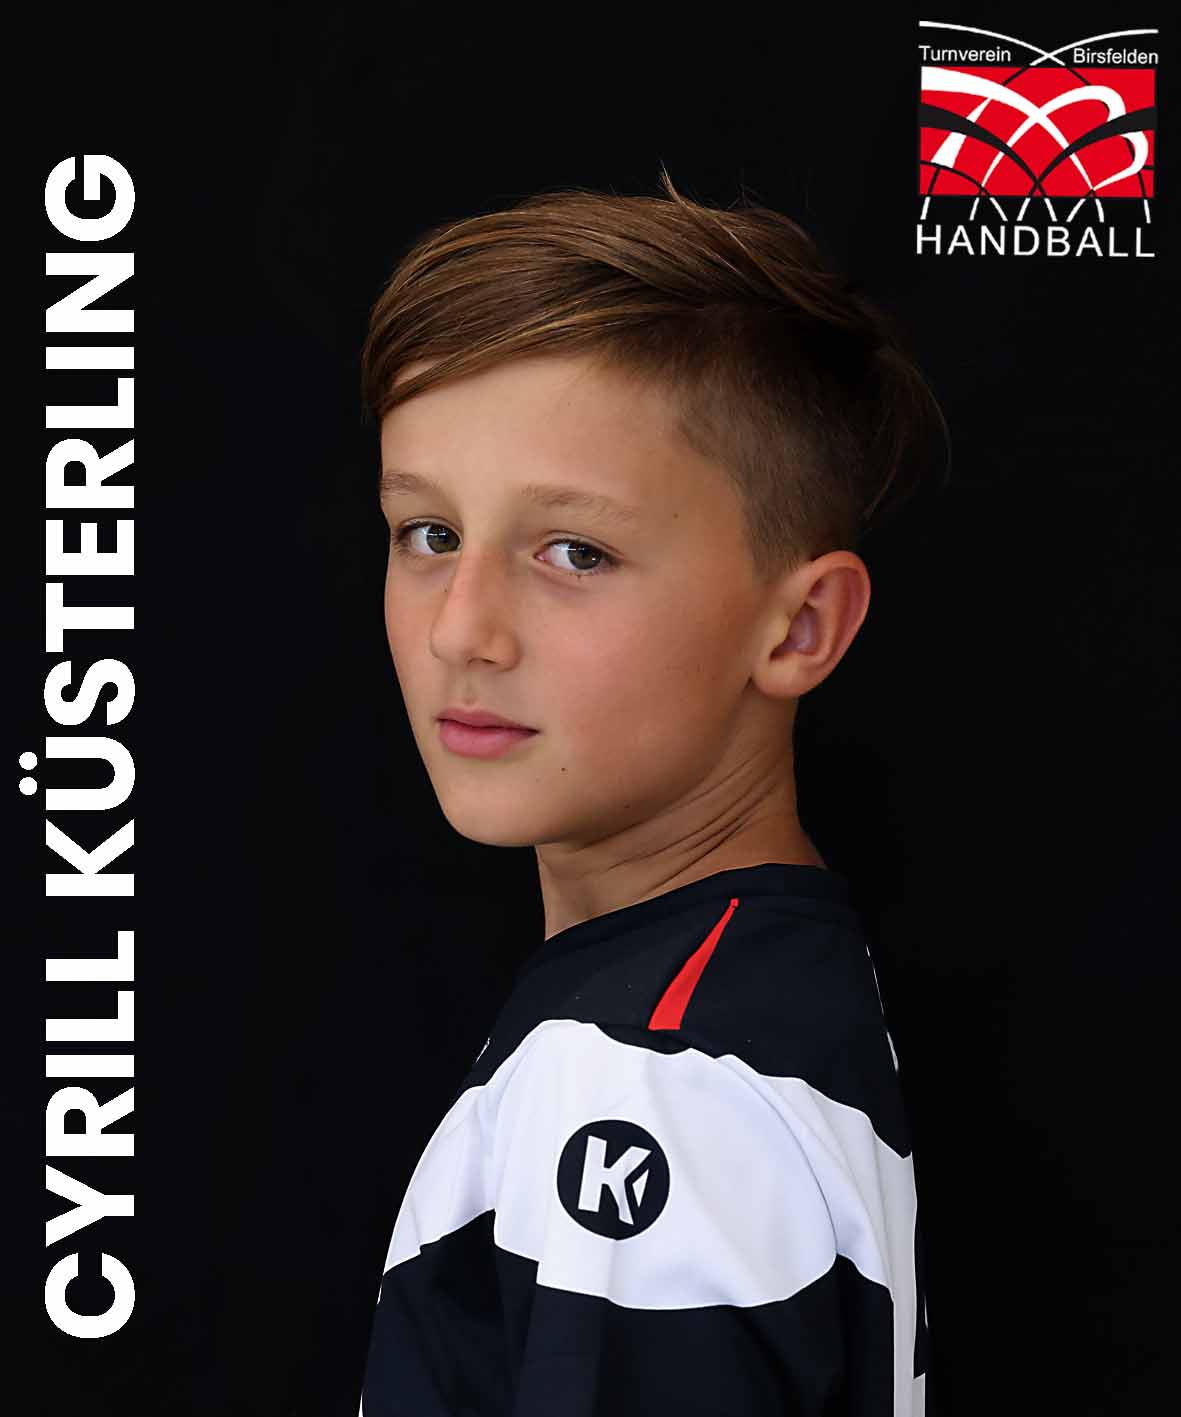 Kuesterling Cyrill 2021 U13 HP